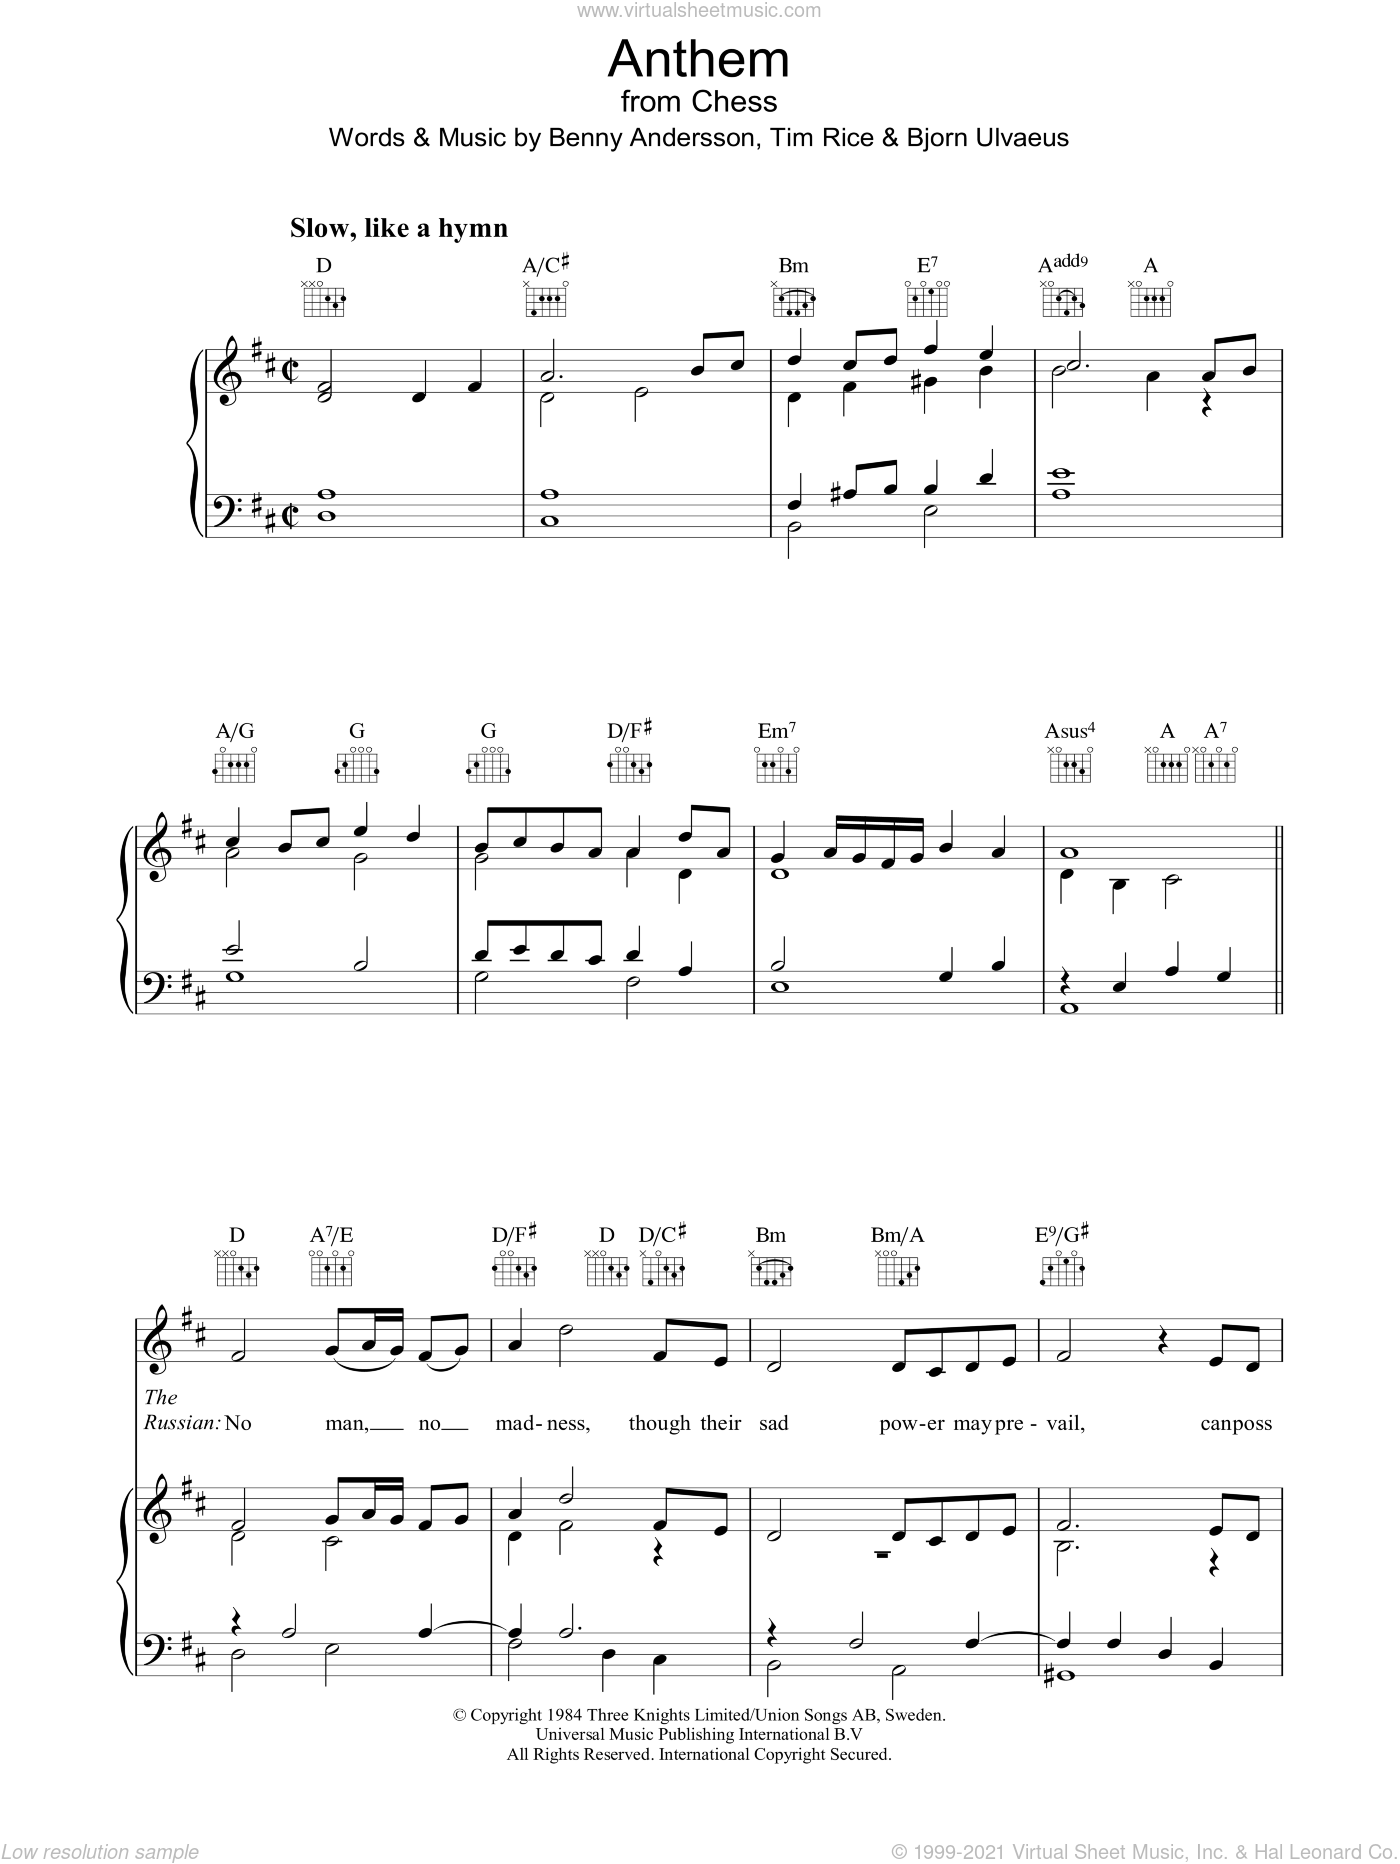 Anthem (from Chess) sheet music for voice, piano or guitar by Tim Rice